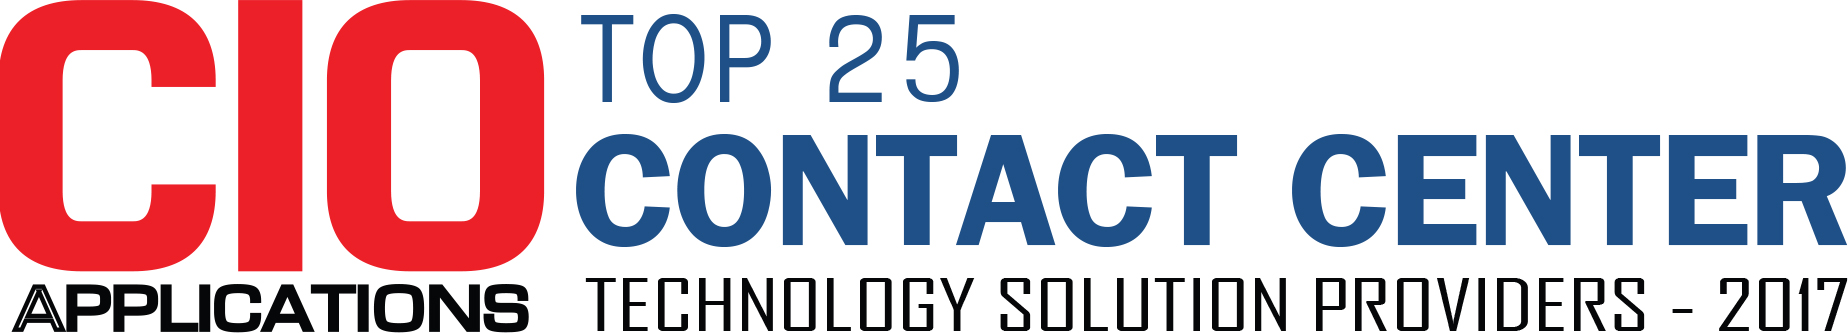 Top 25 Contact Center Technology Solution Companies - 2017